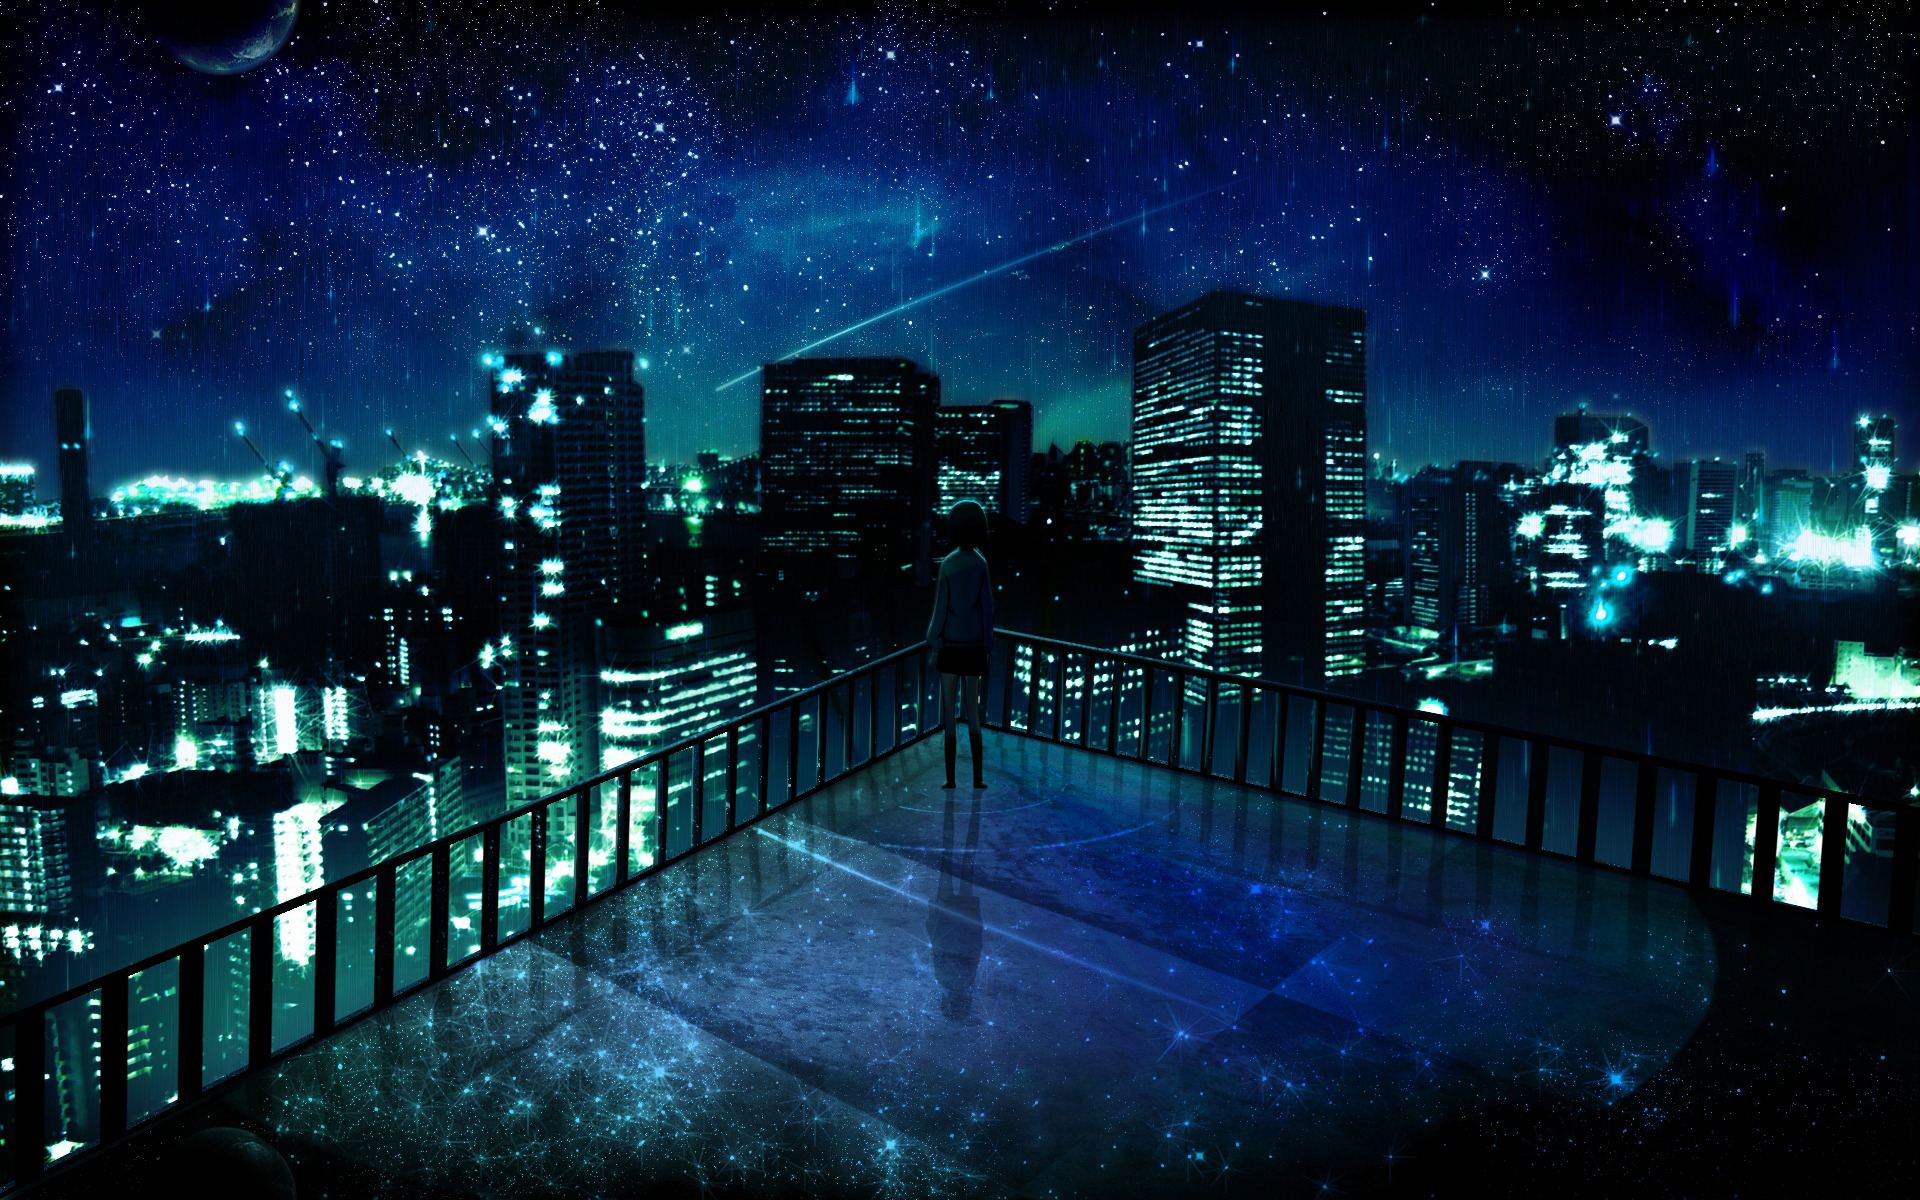 TMC18: Anime Background Wallpaper, Anime Images In High Quality